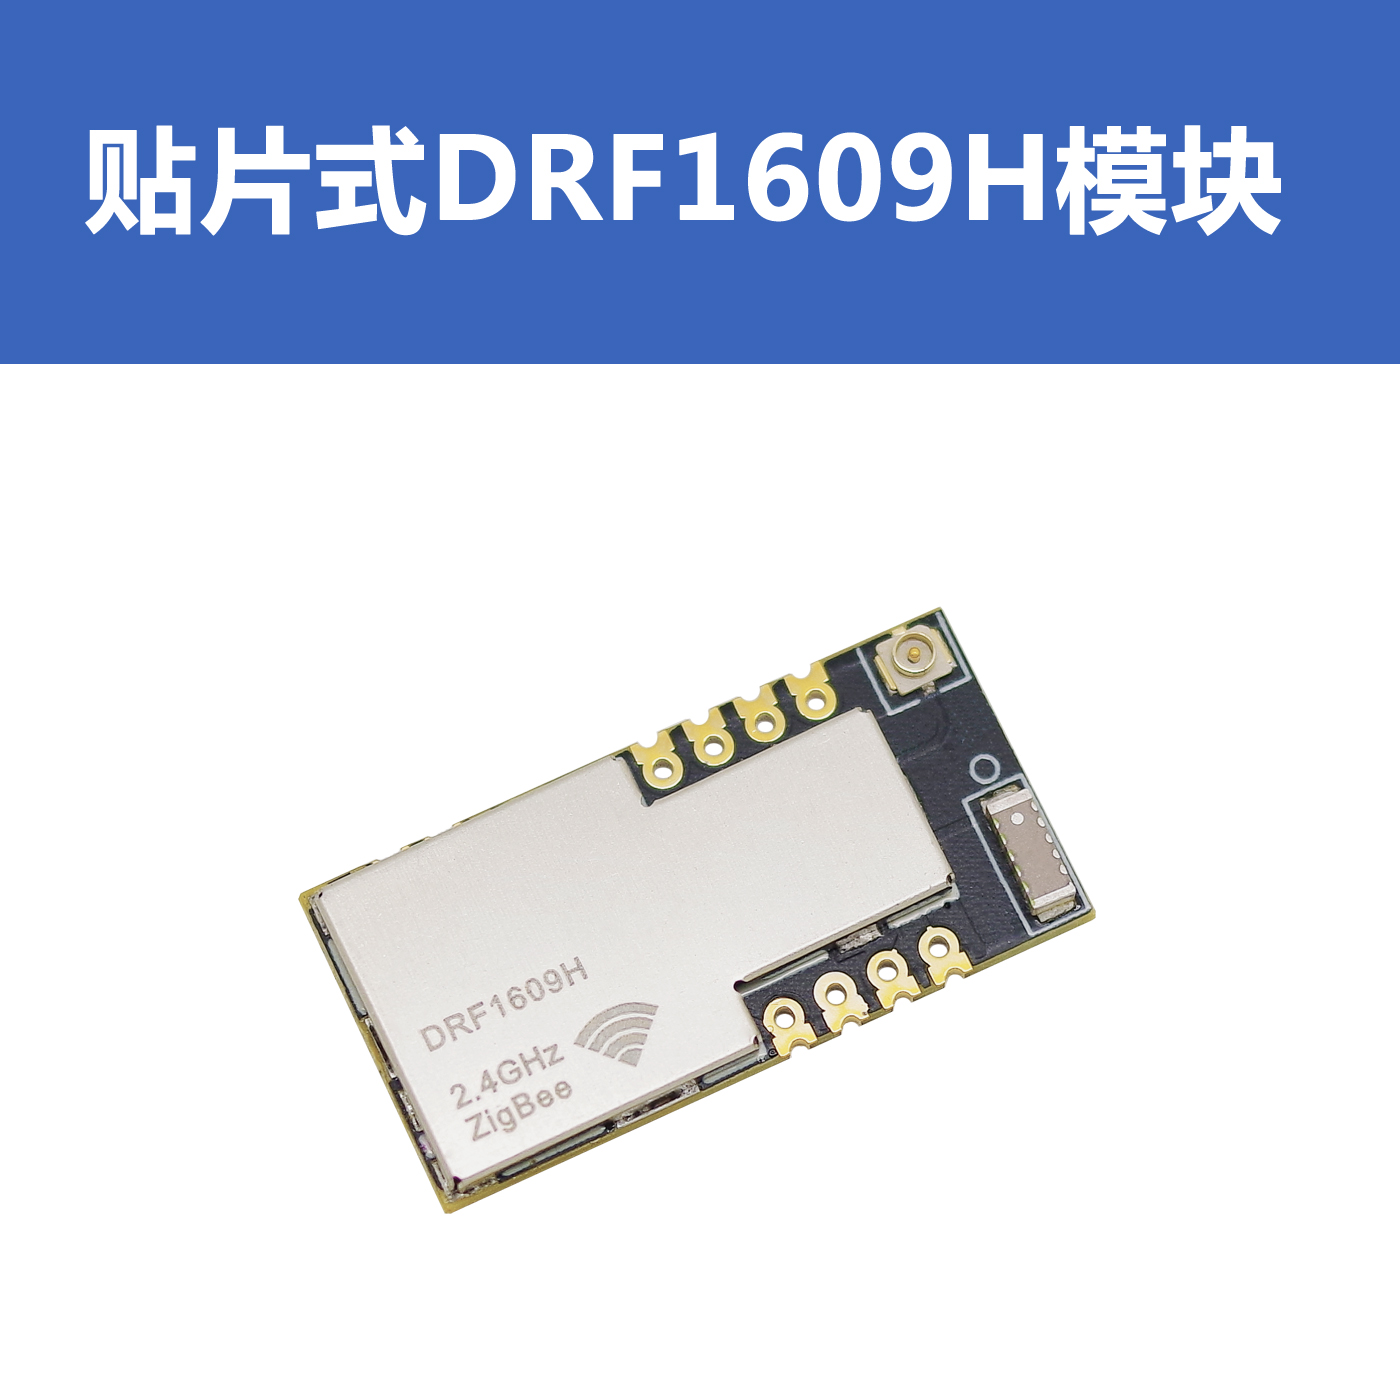 Uart Serial Port To Zigbee Wireless Module Cc2630 Chip Drf1609h With Circuit Diagram Of Pa 16km In Air Conditioner Parts From Home Appliances On Alibaba